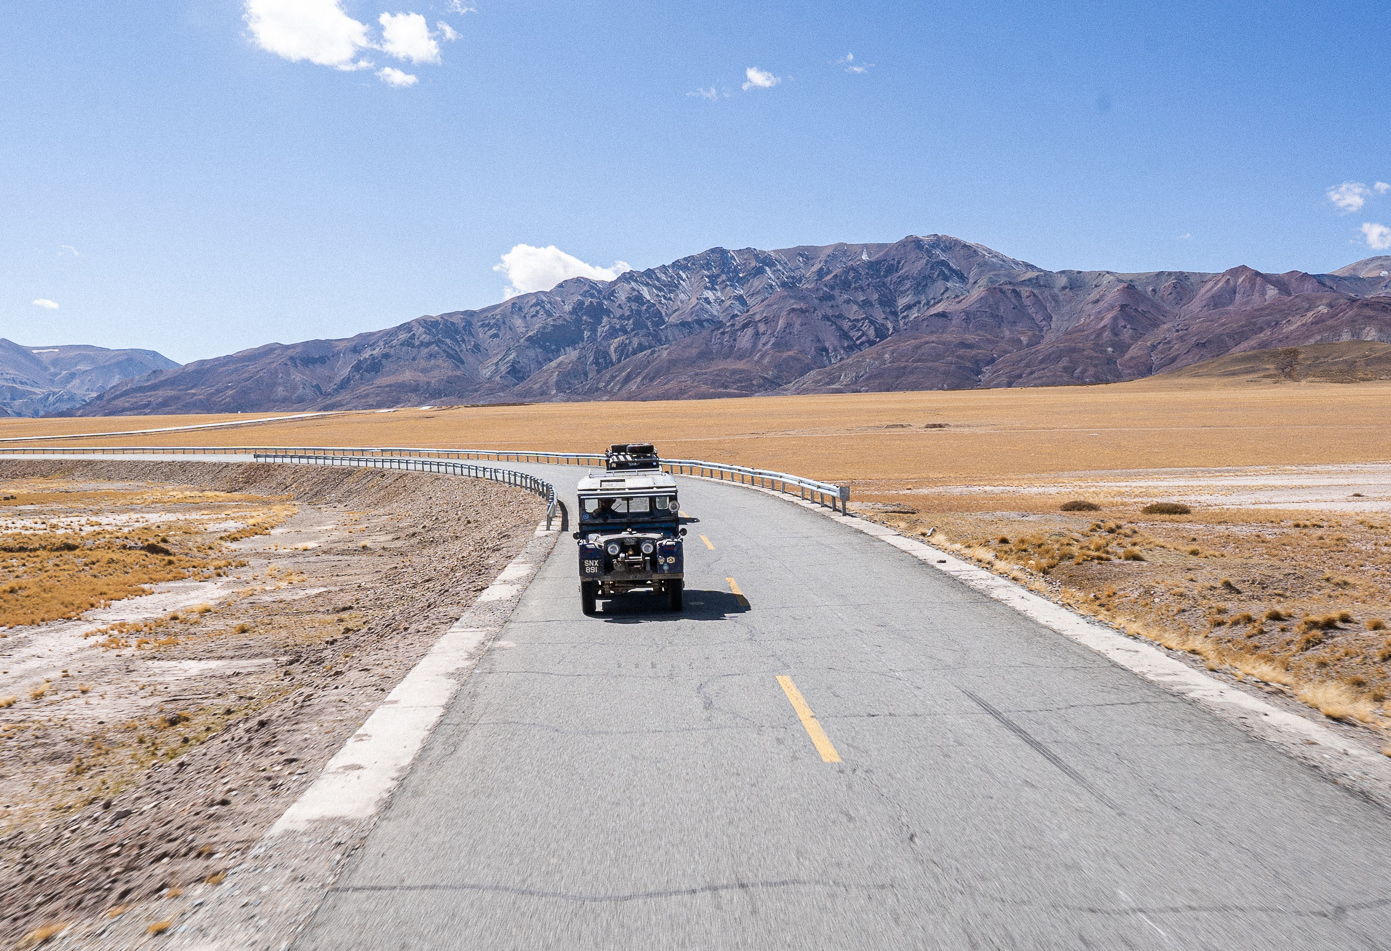 Oxford-on-the-road-through-Tibet-1-1